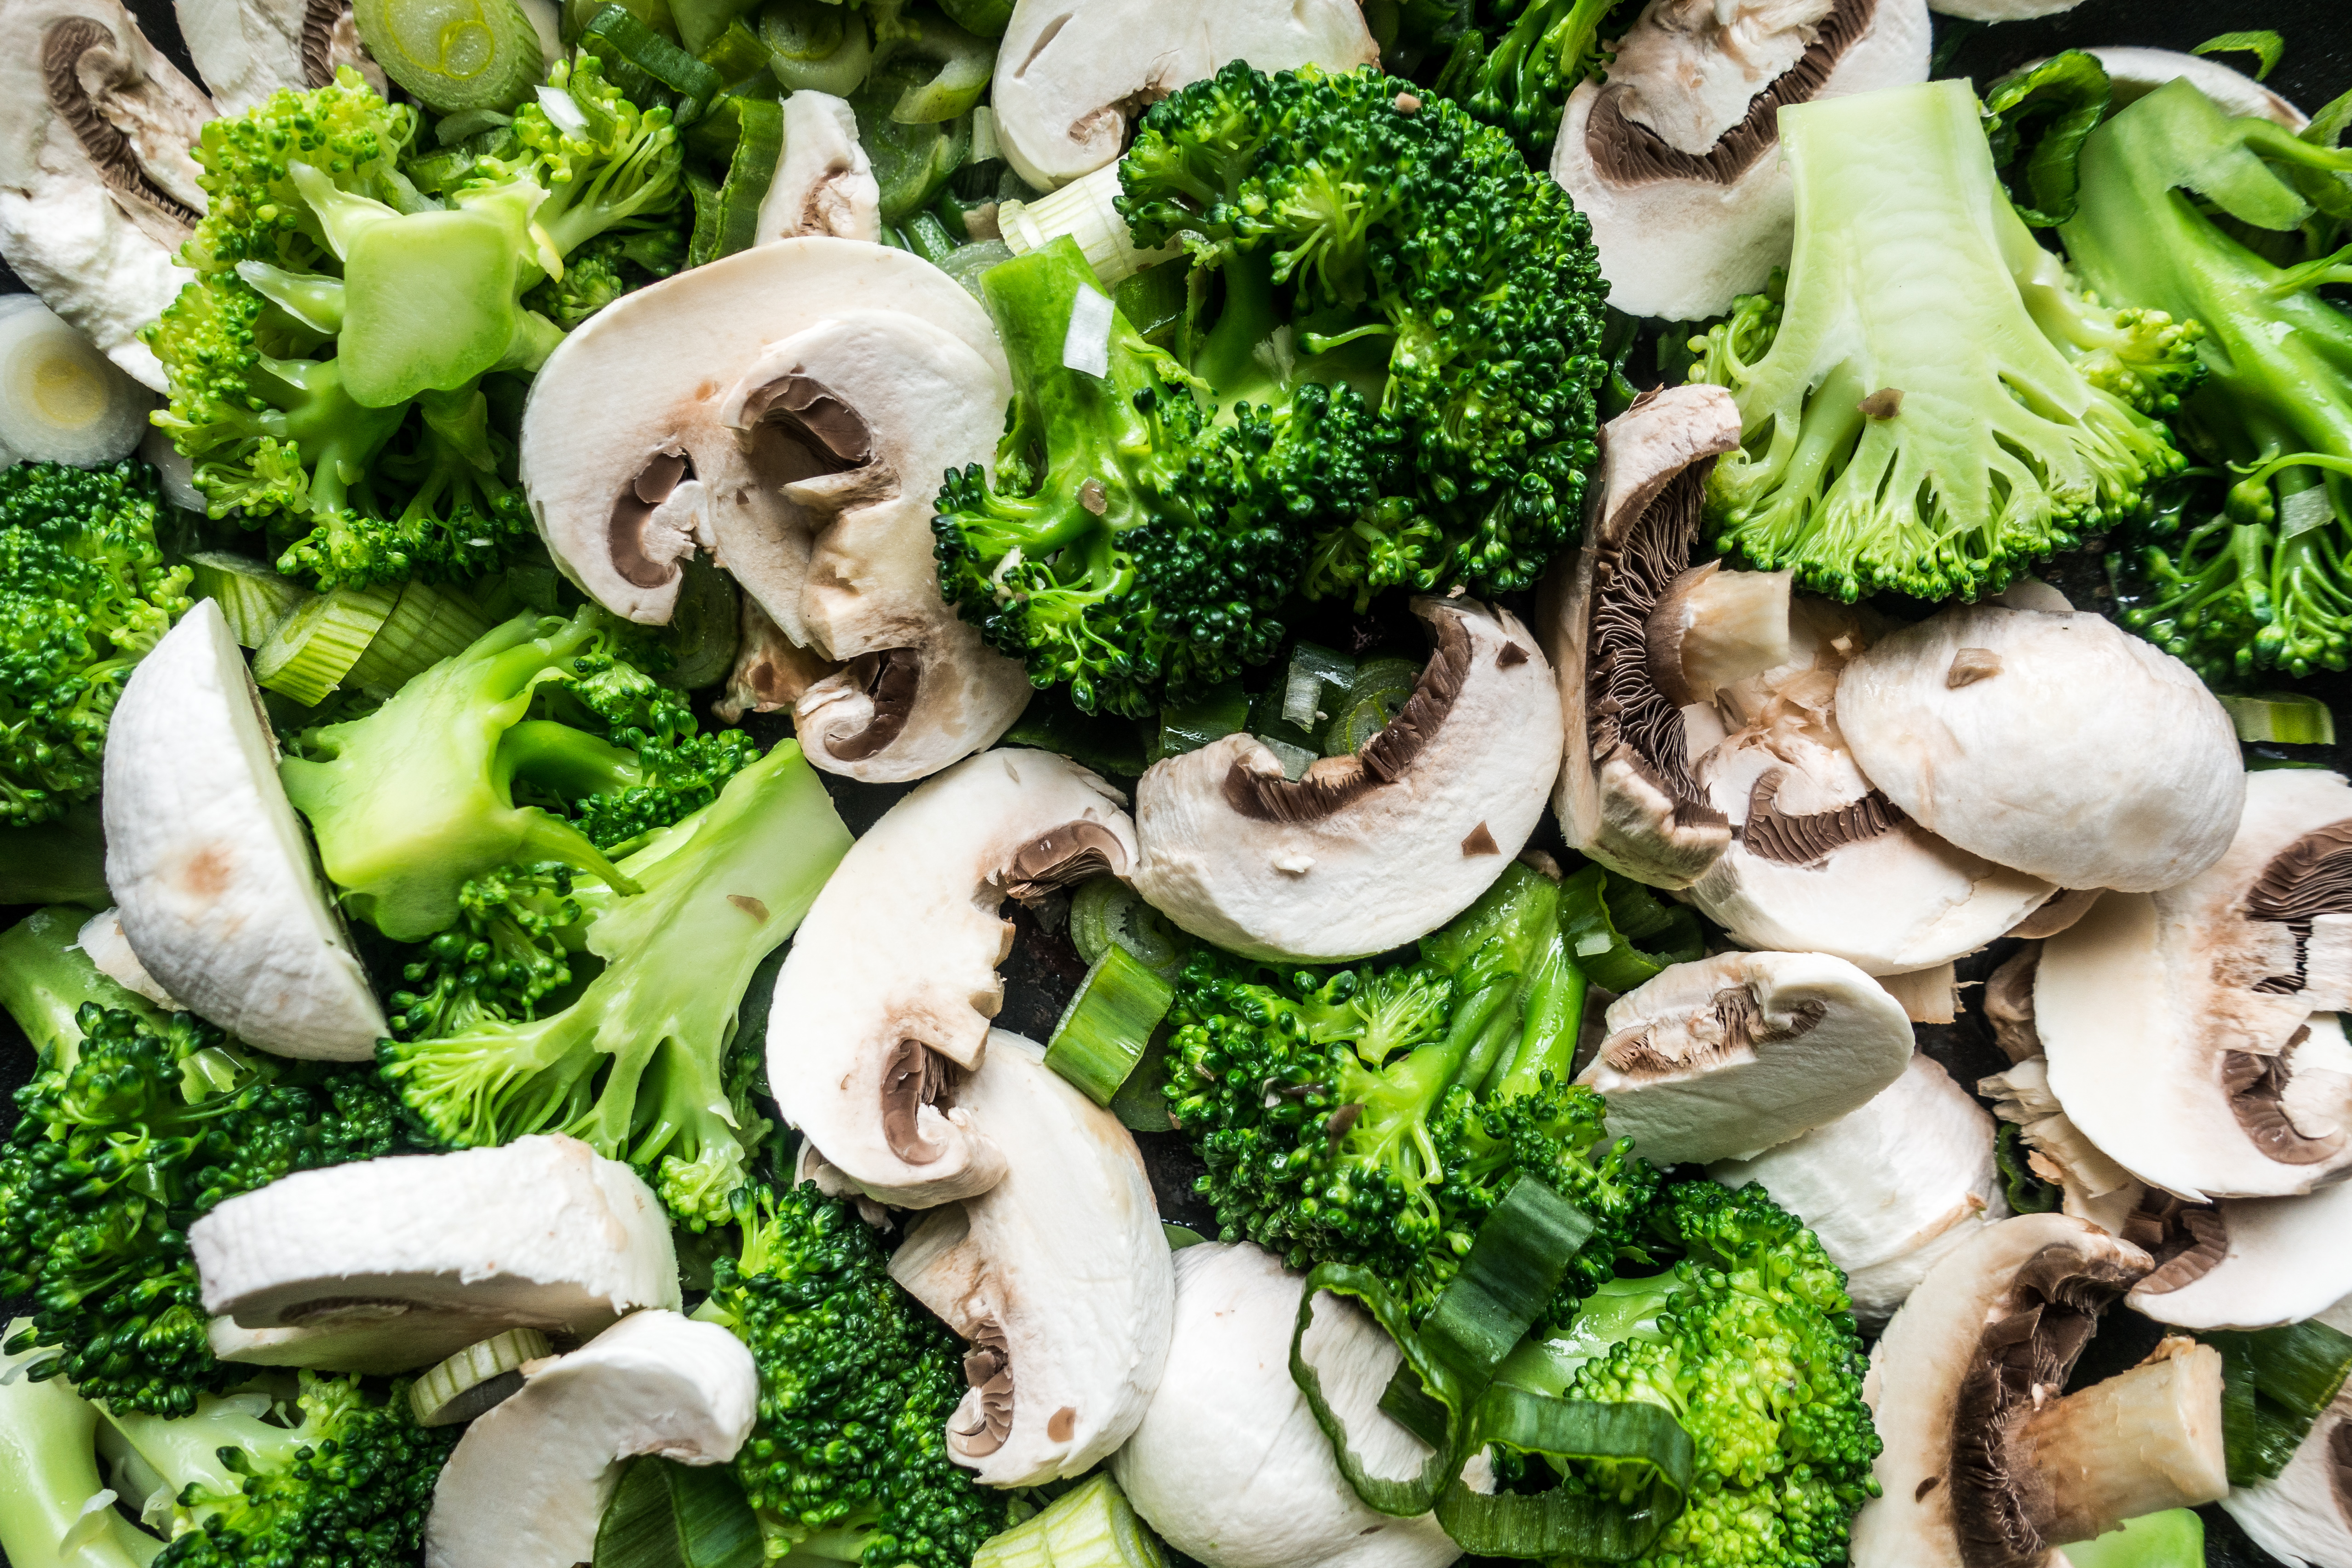 Colorful broccoli mushrooms mix